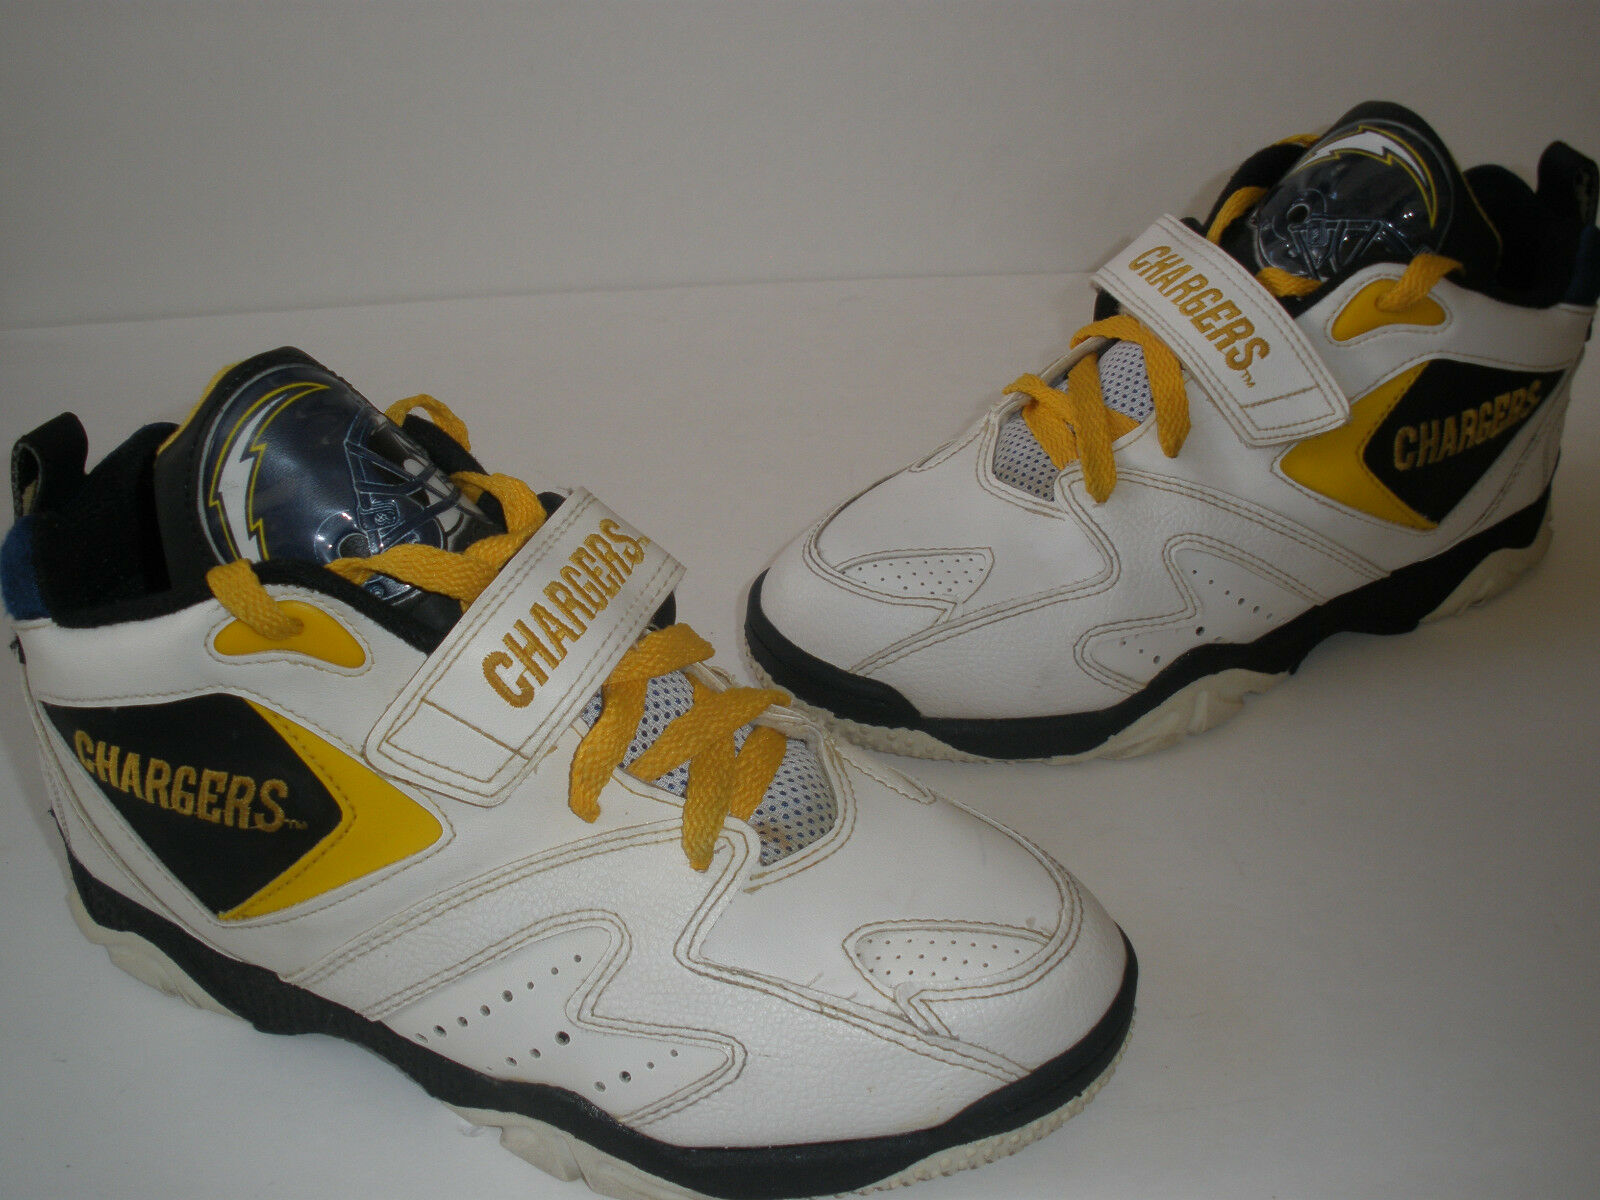 @ TEAM NFL 1994 CHARGERS SHOES SIZE US 7   RARE HOT VINTAGE only 1 pair on EBAY